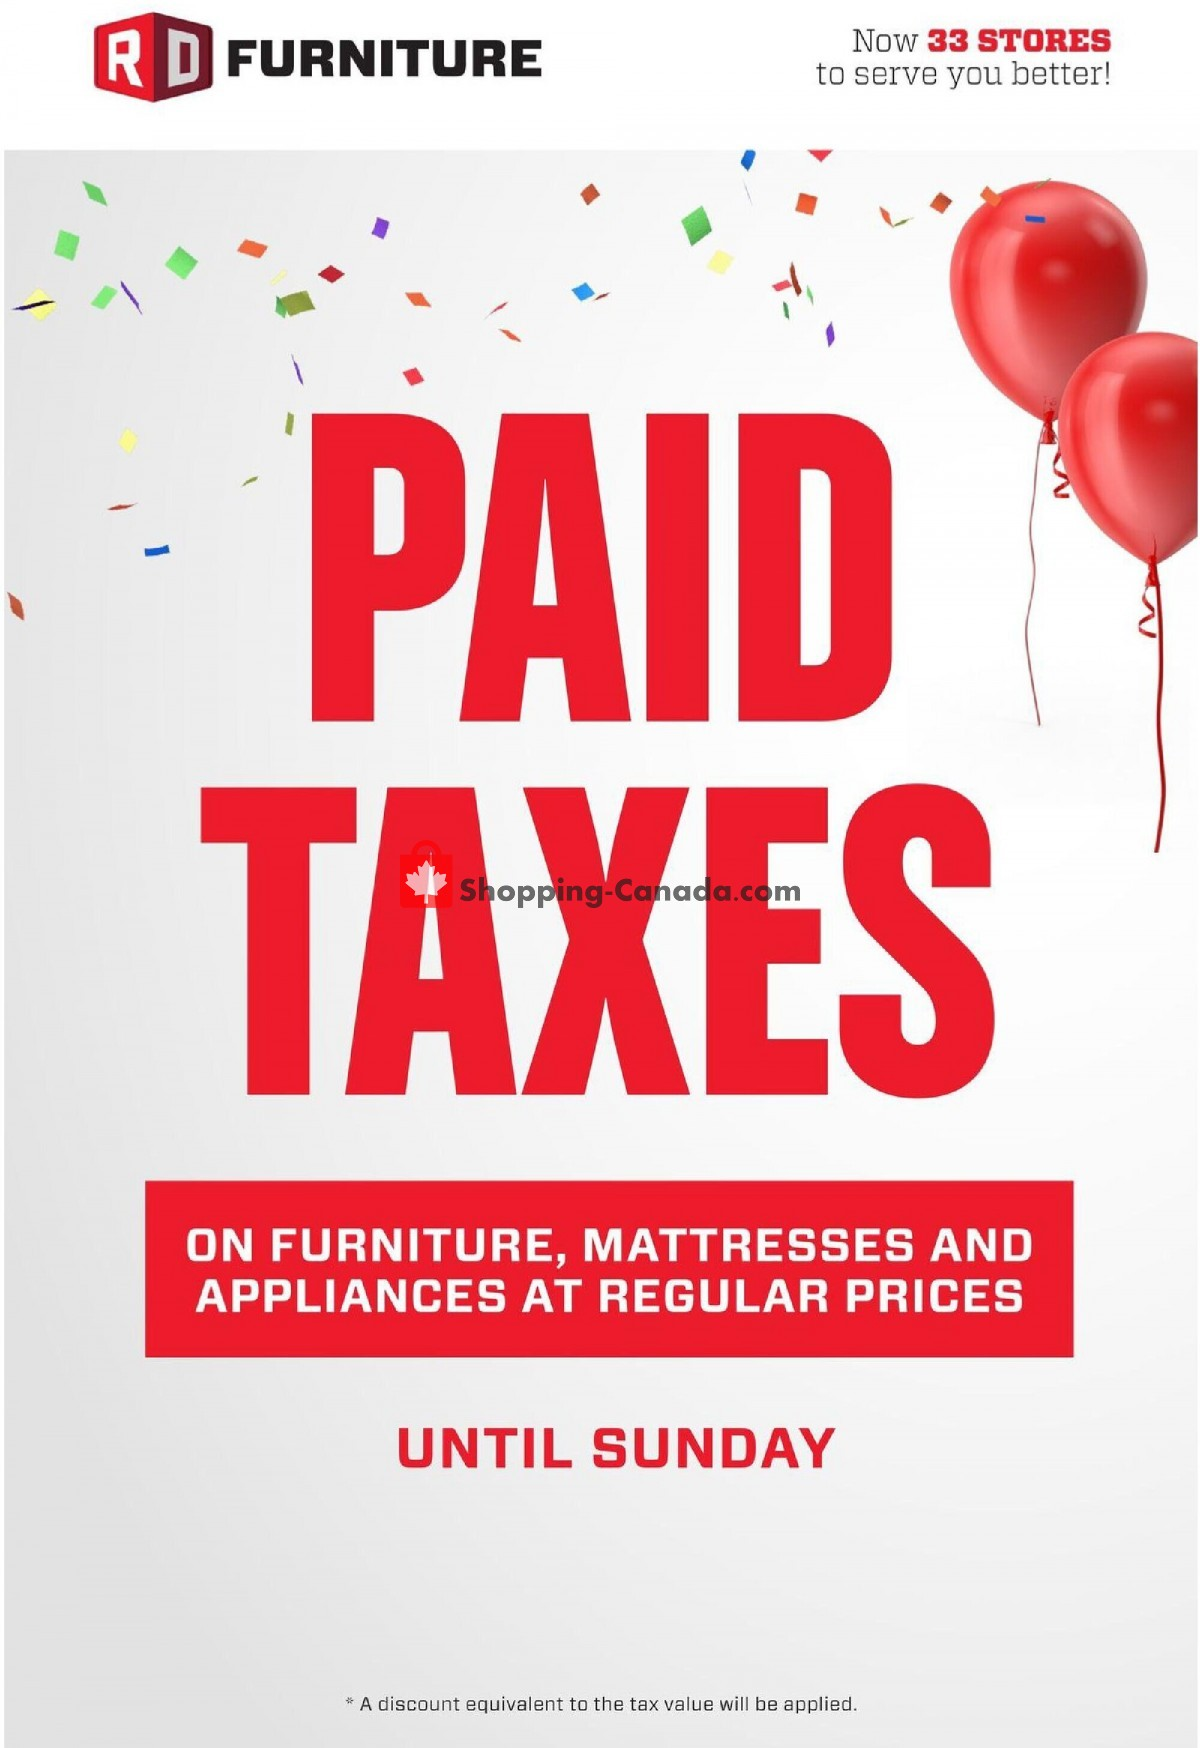 Flyer RD Furniture Canada - from Monday April 26, 2021 to Sunday May 2, 2021